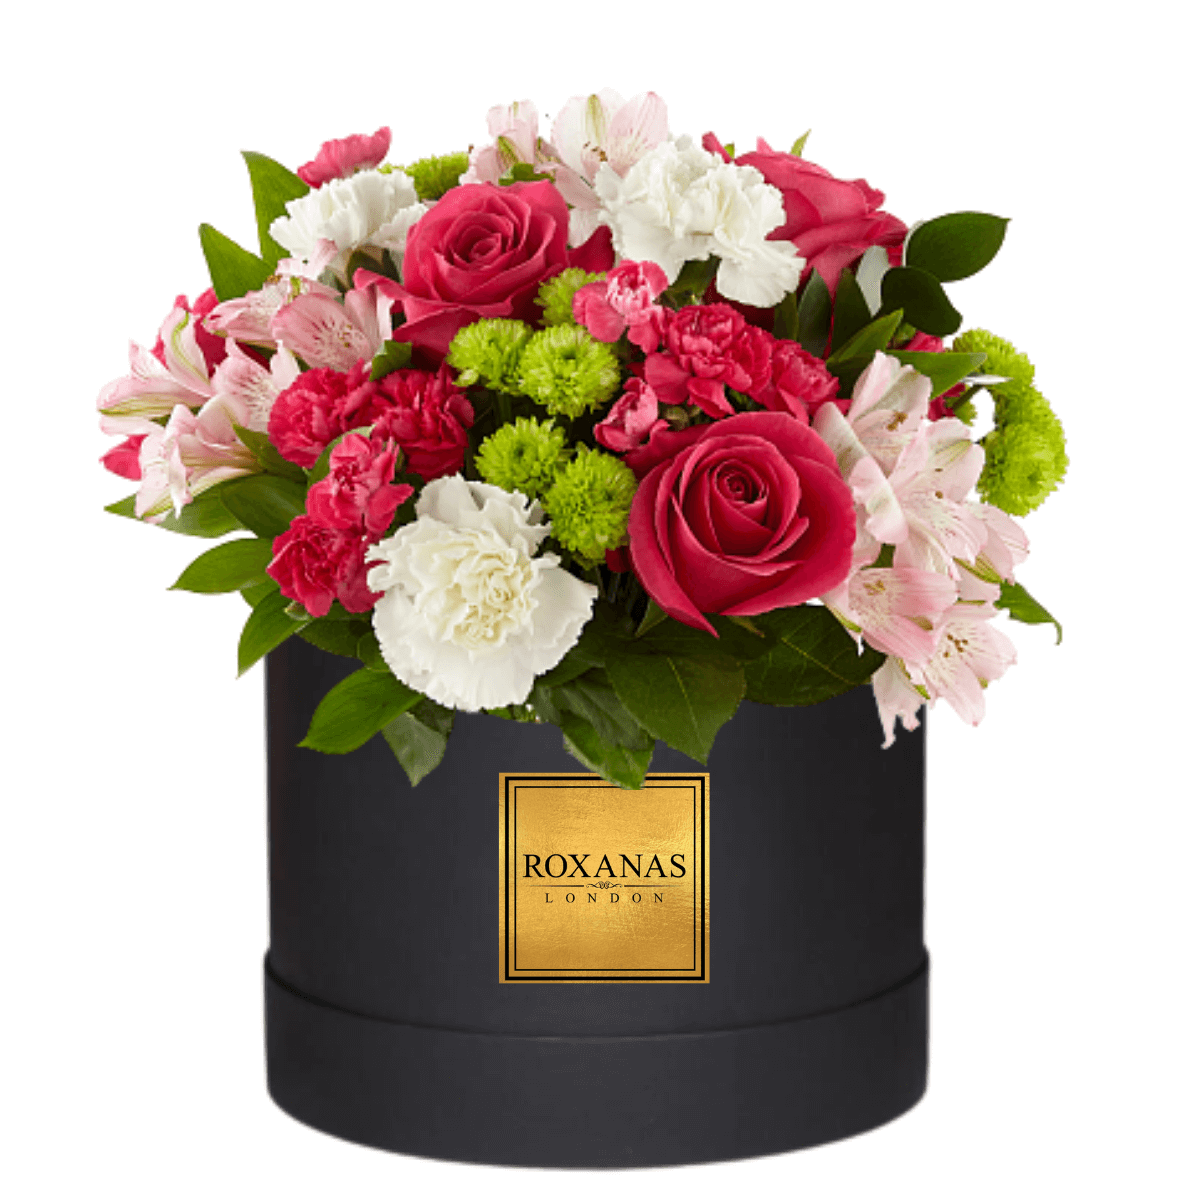 Pink rose and white flower hat box delivery